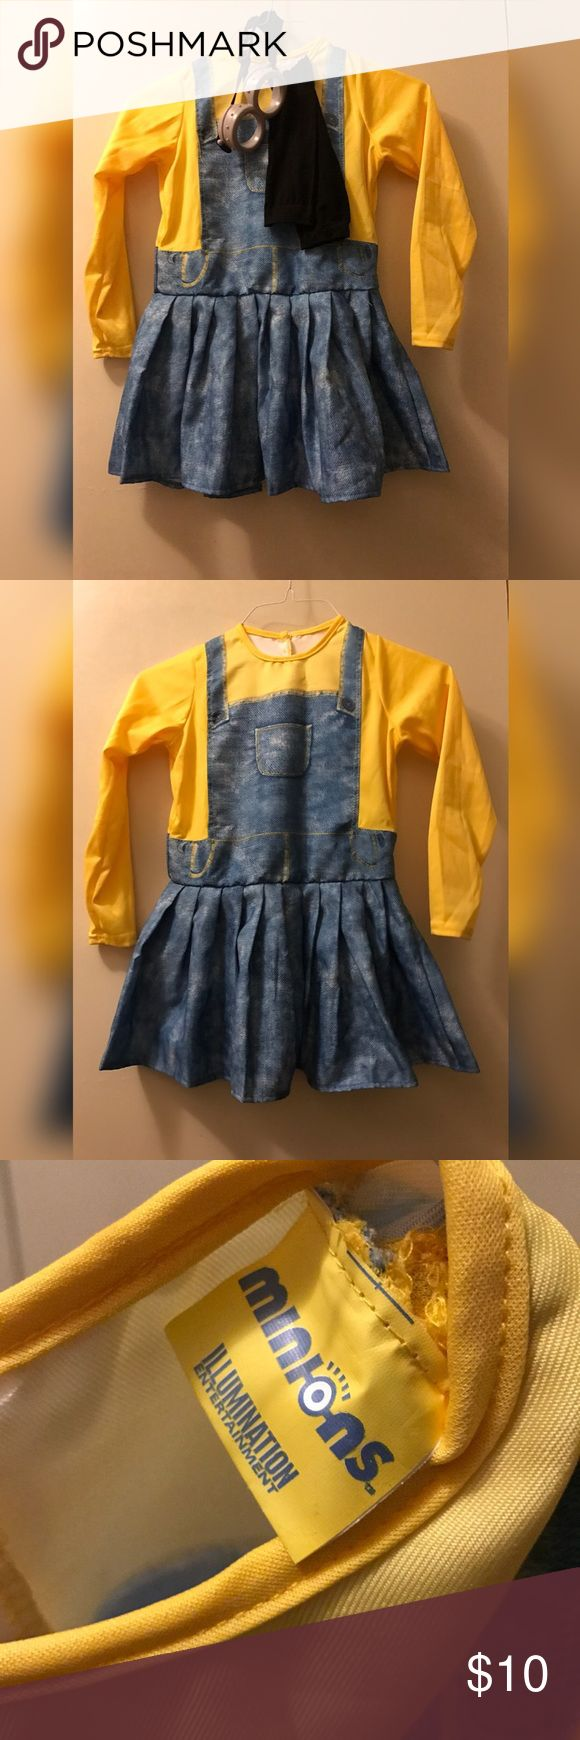 Girl Minions costume Girl minions costume. M/L size. Runs small. Worn one time! Smoke free home. 🚫NO TRADES🚫 Costumes Halloween